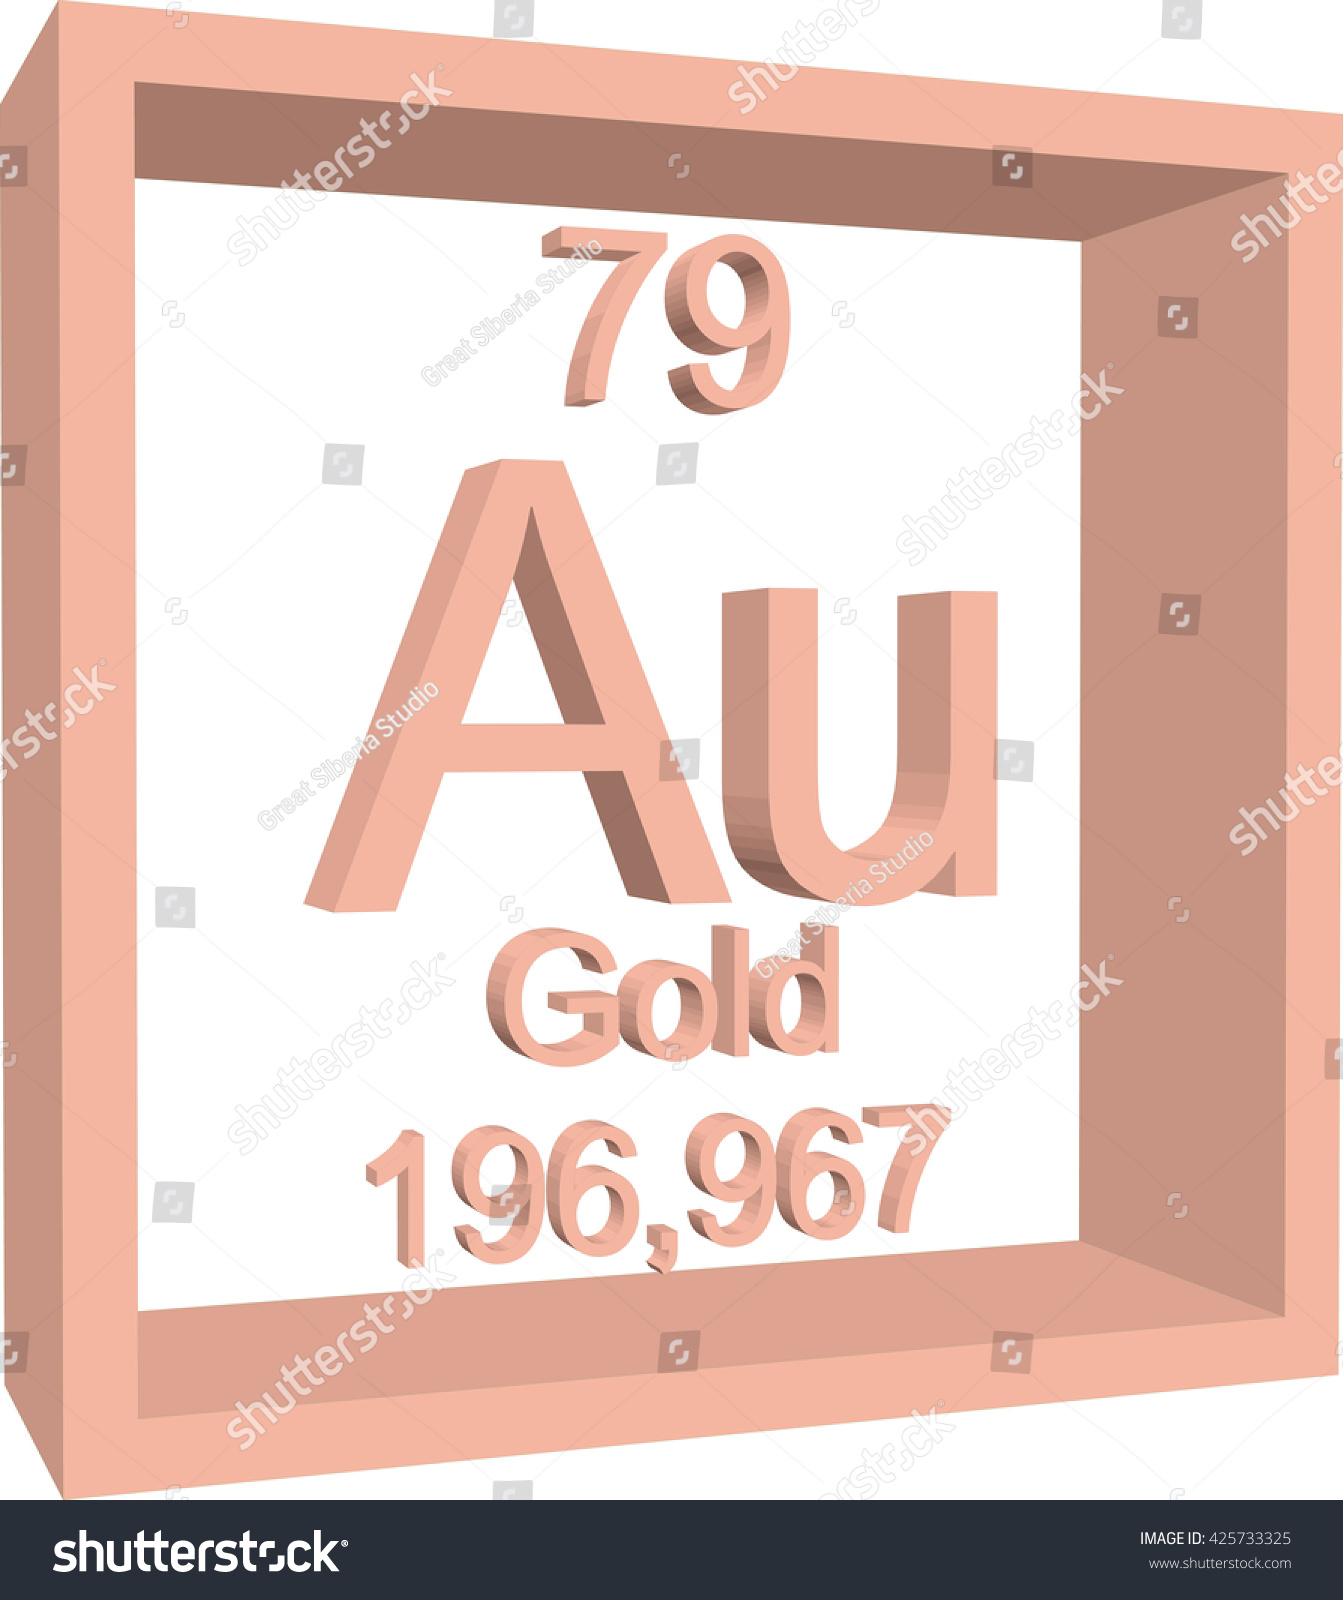 Periodic table elements gold stock vector 425733325 shutterstock periodic table of elements gold urtaz Gallery